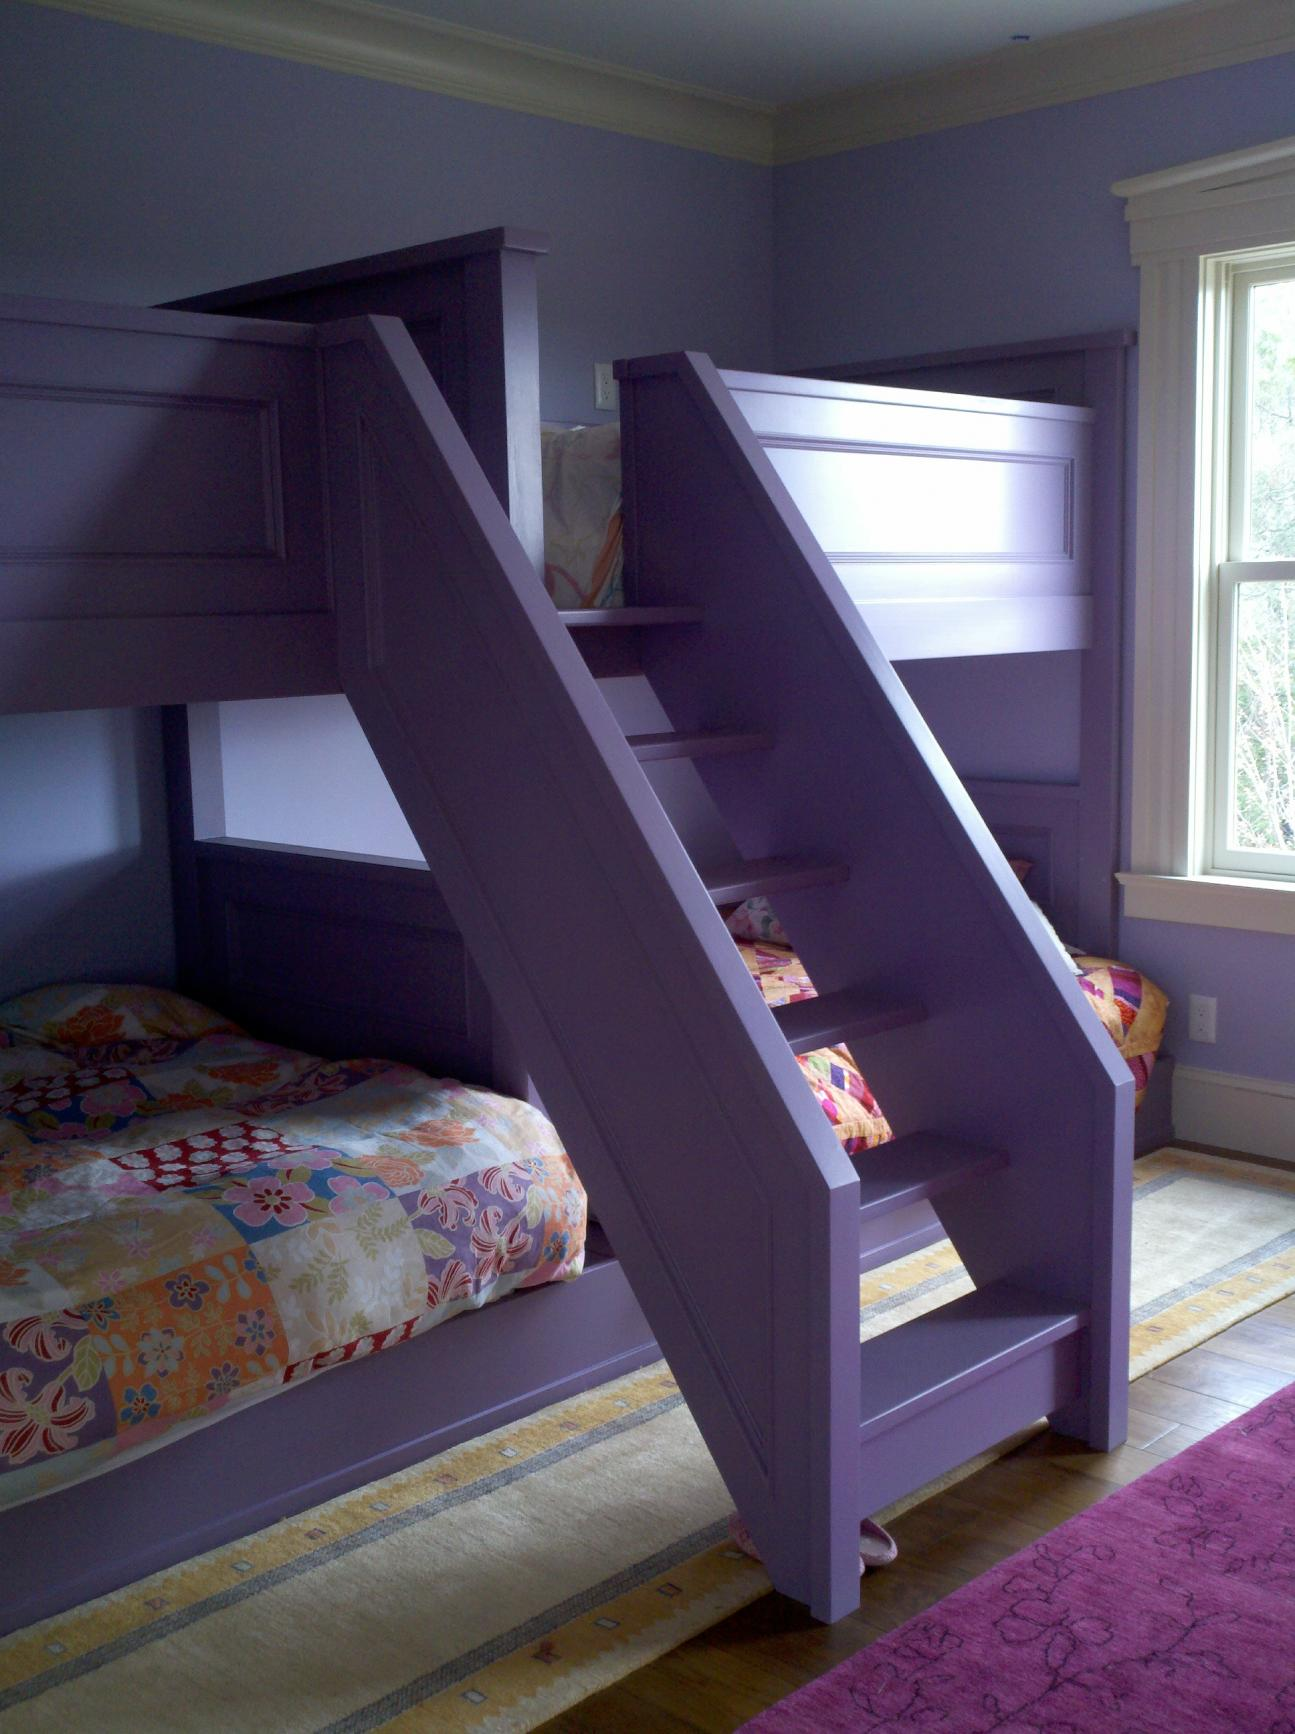 pair of quad bunk beds-2011-02-28_10-15-23_494.jpg